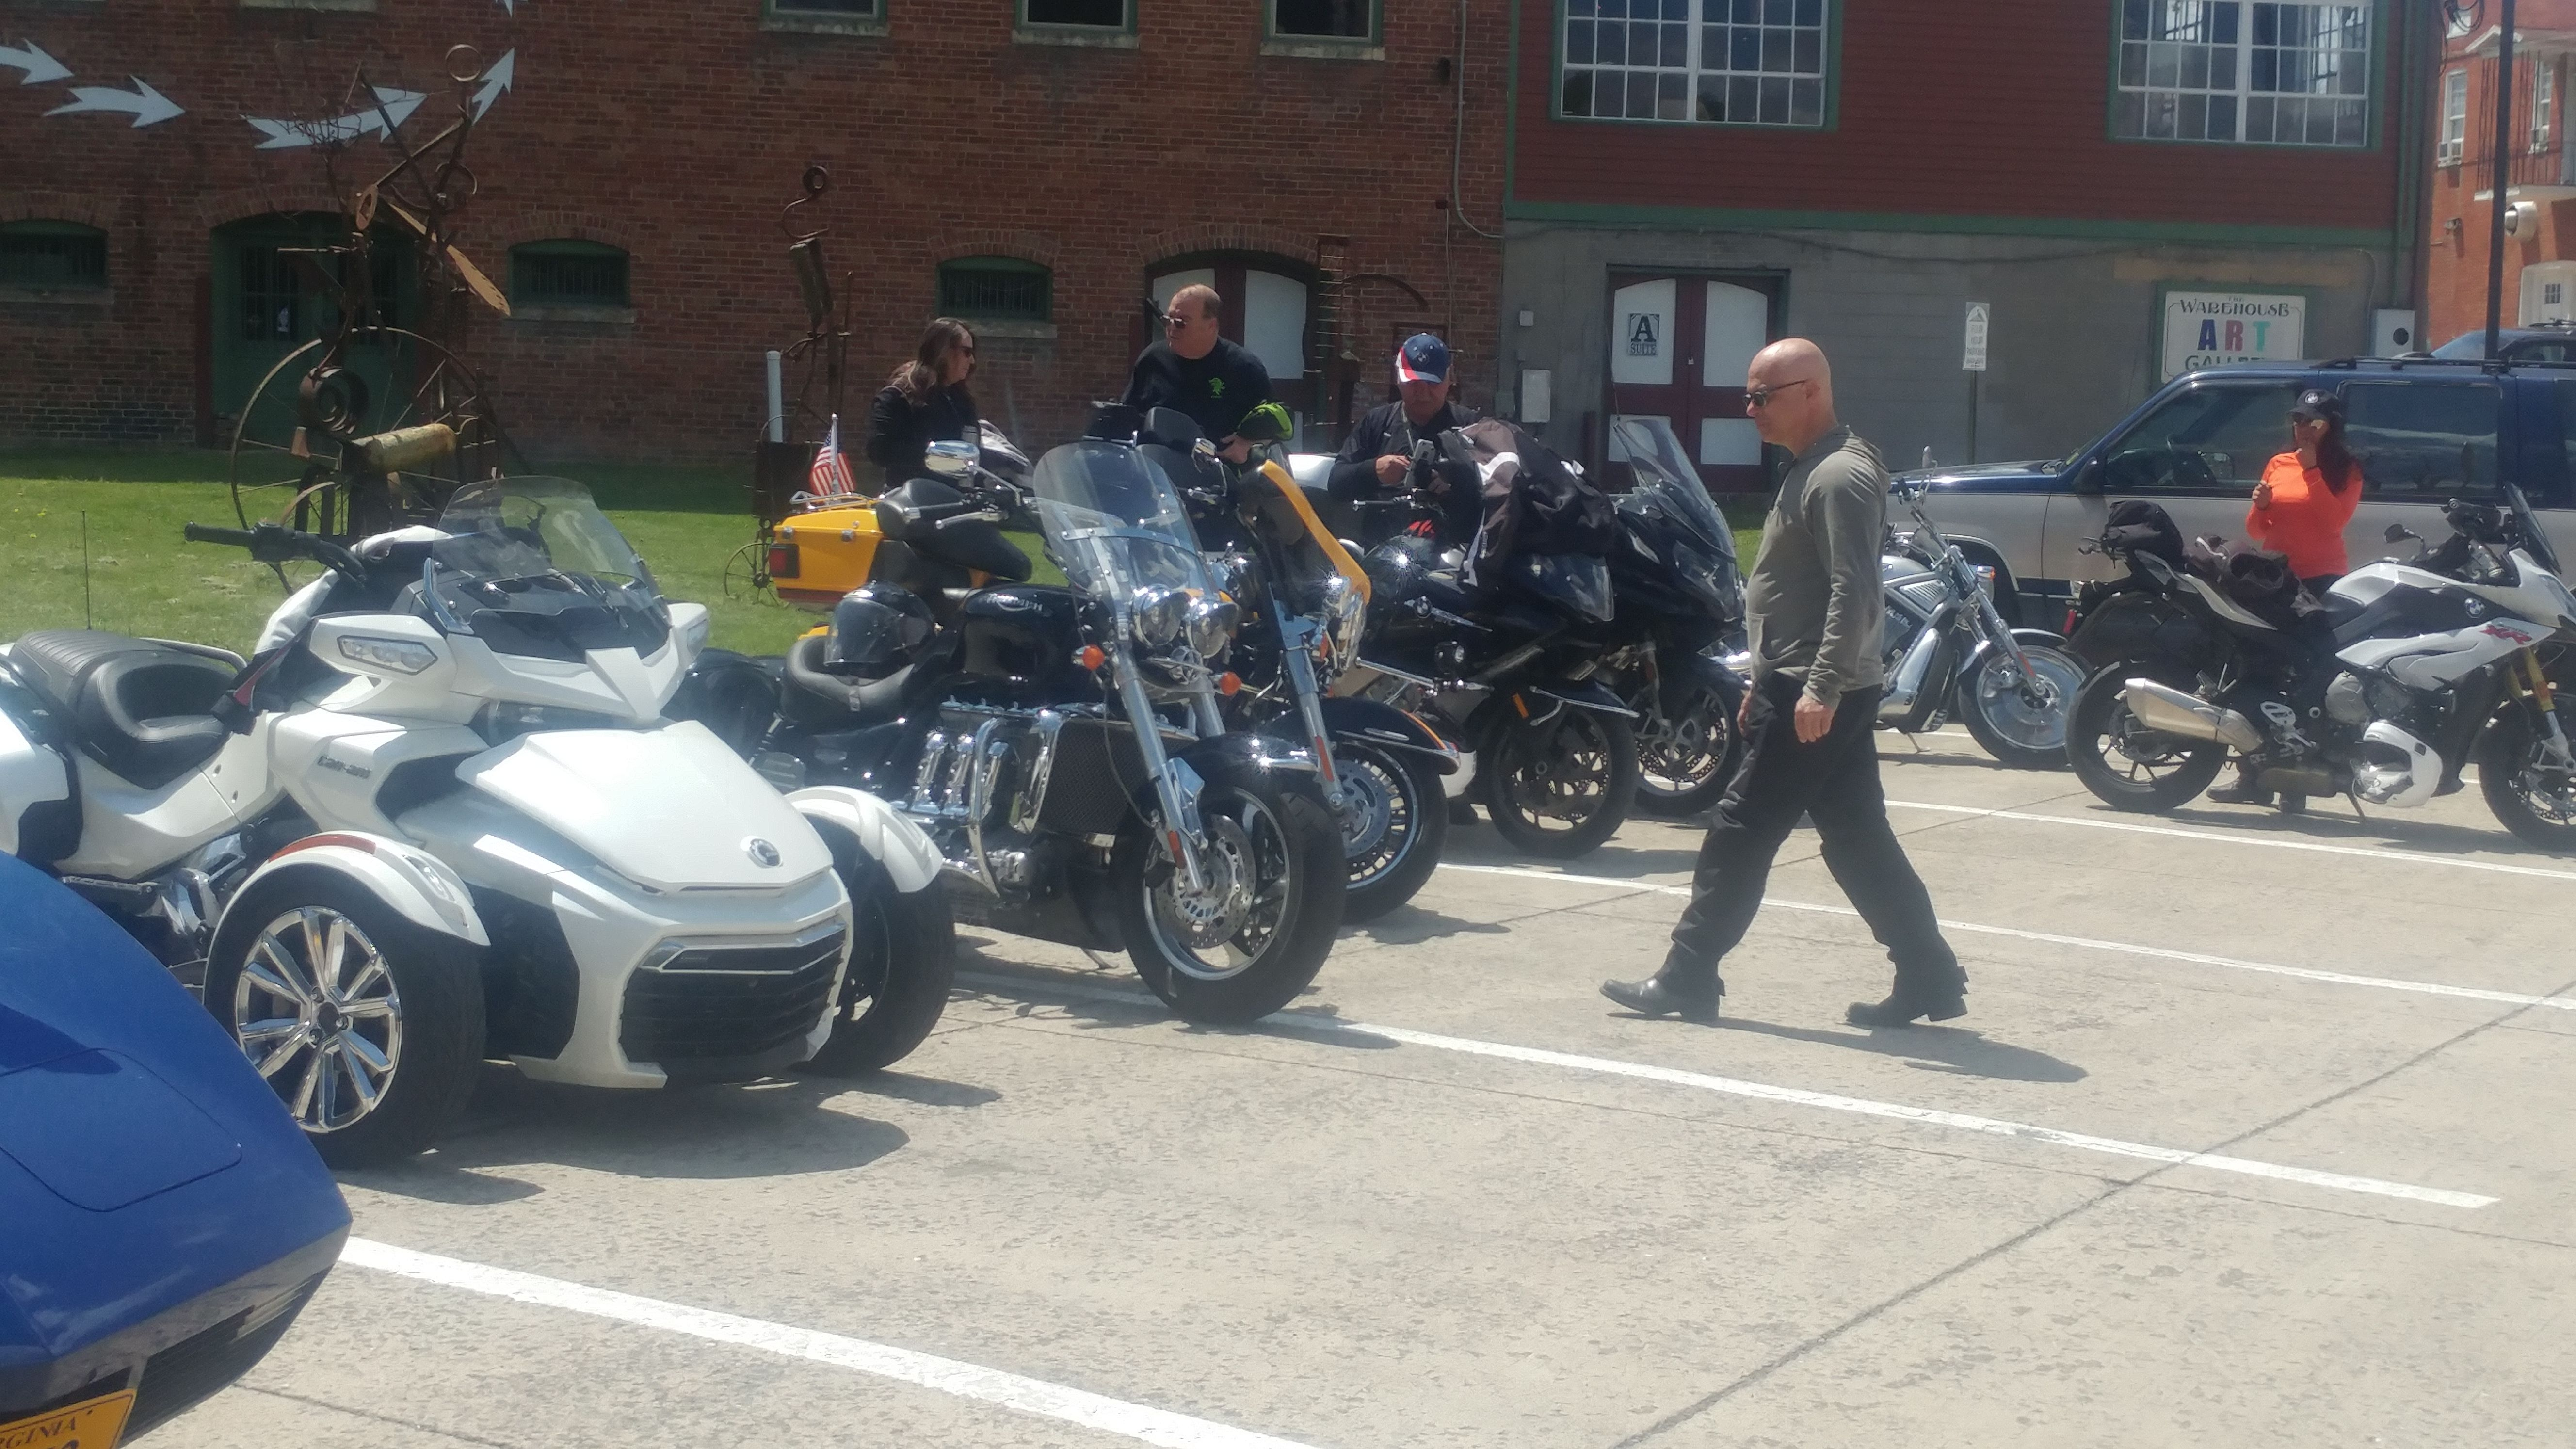 The Central Maryland Motorcycle Riders